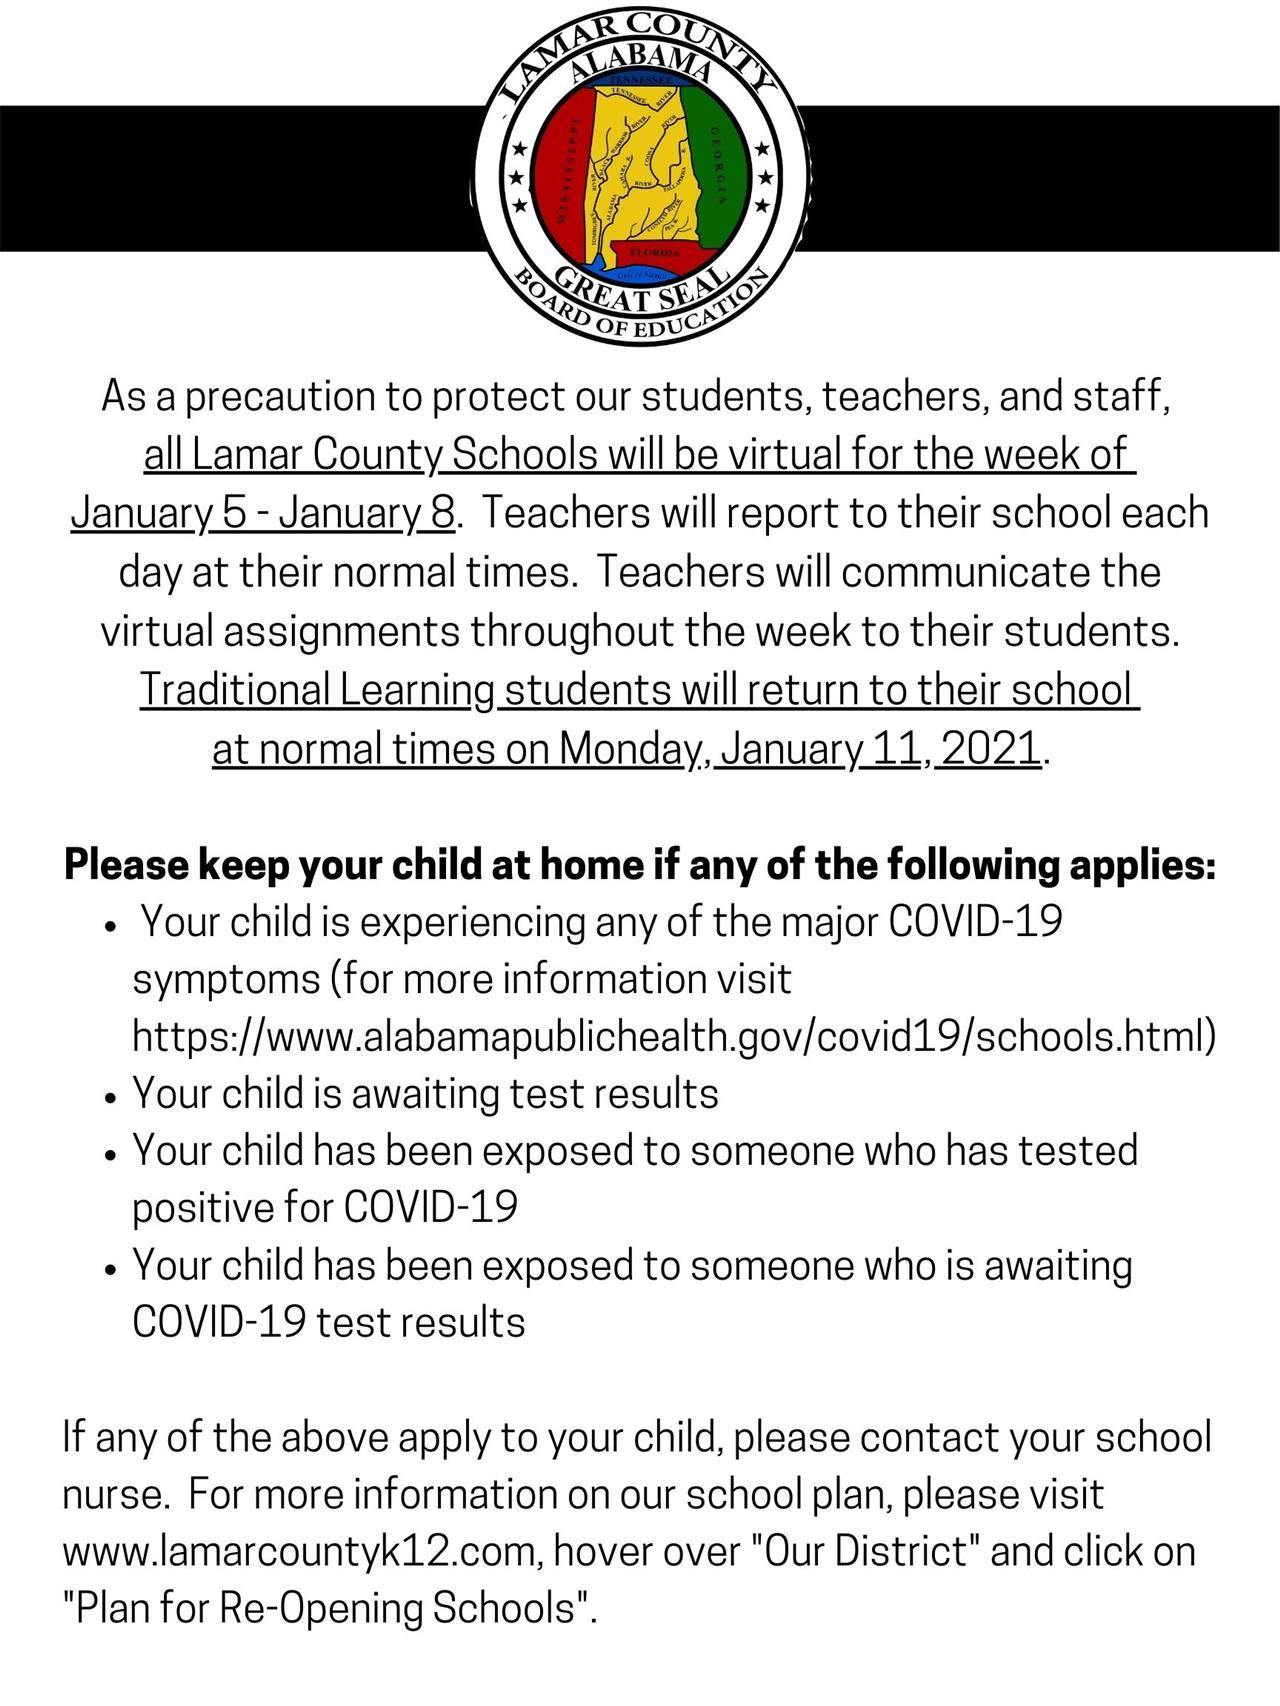 Lamar County Schools Virtual Week